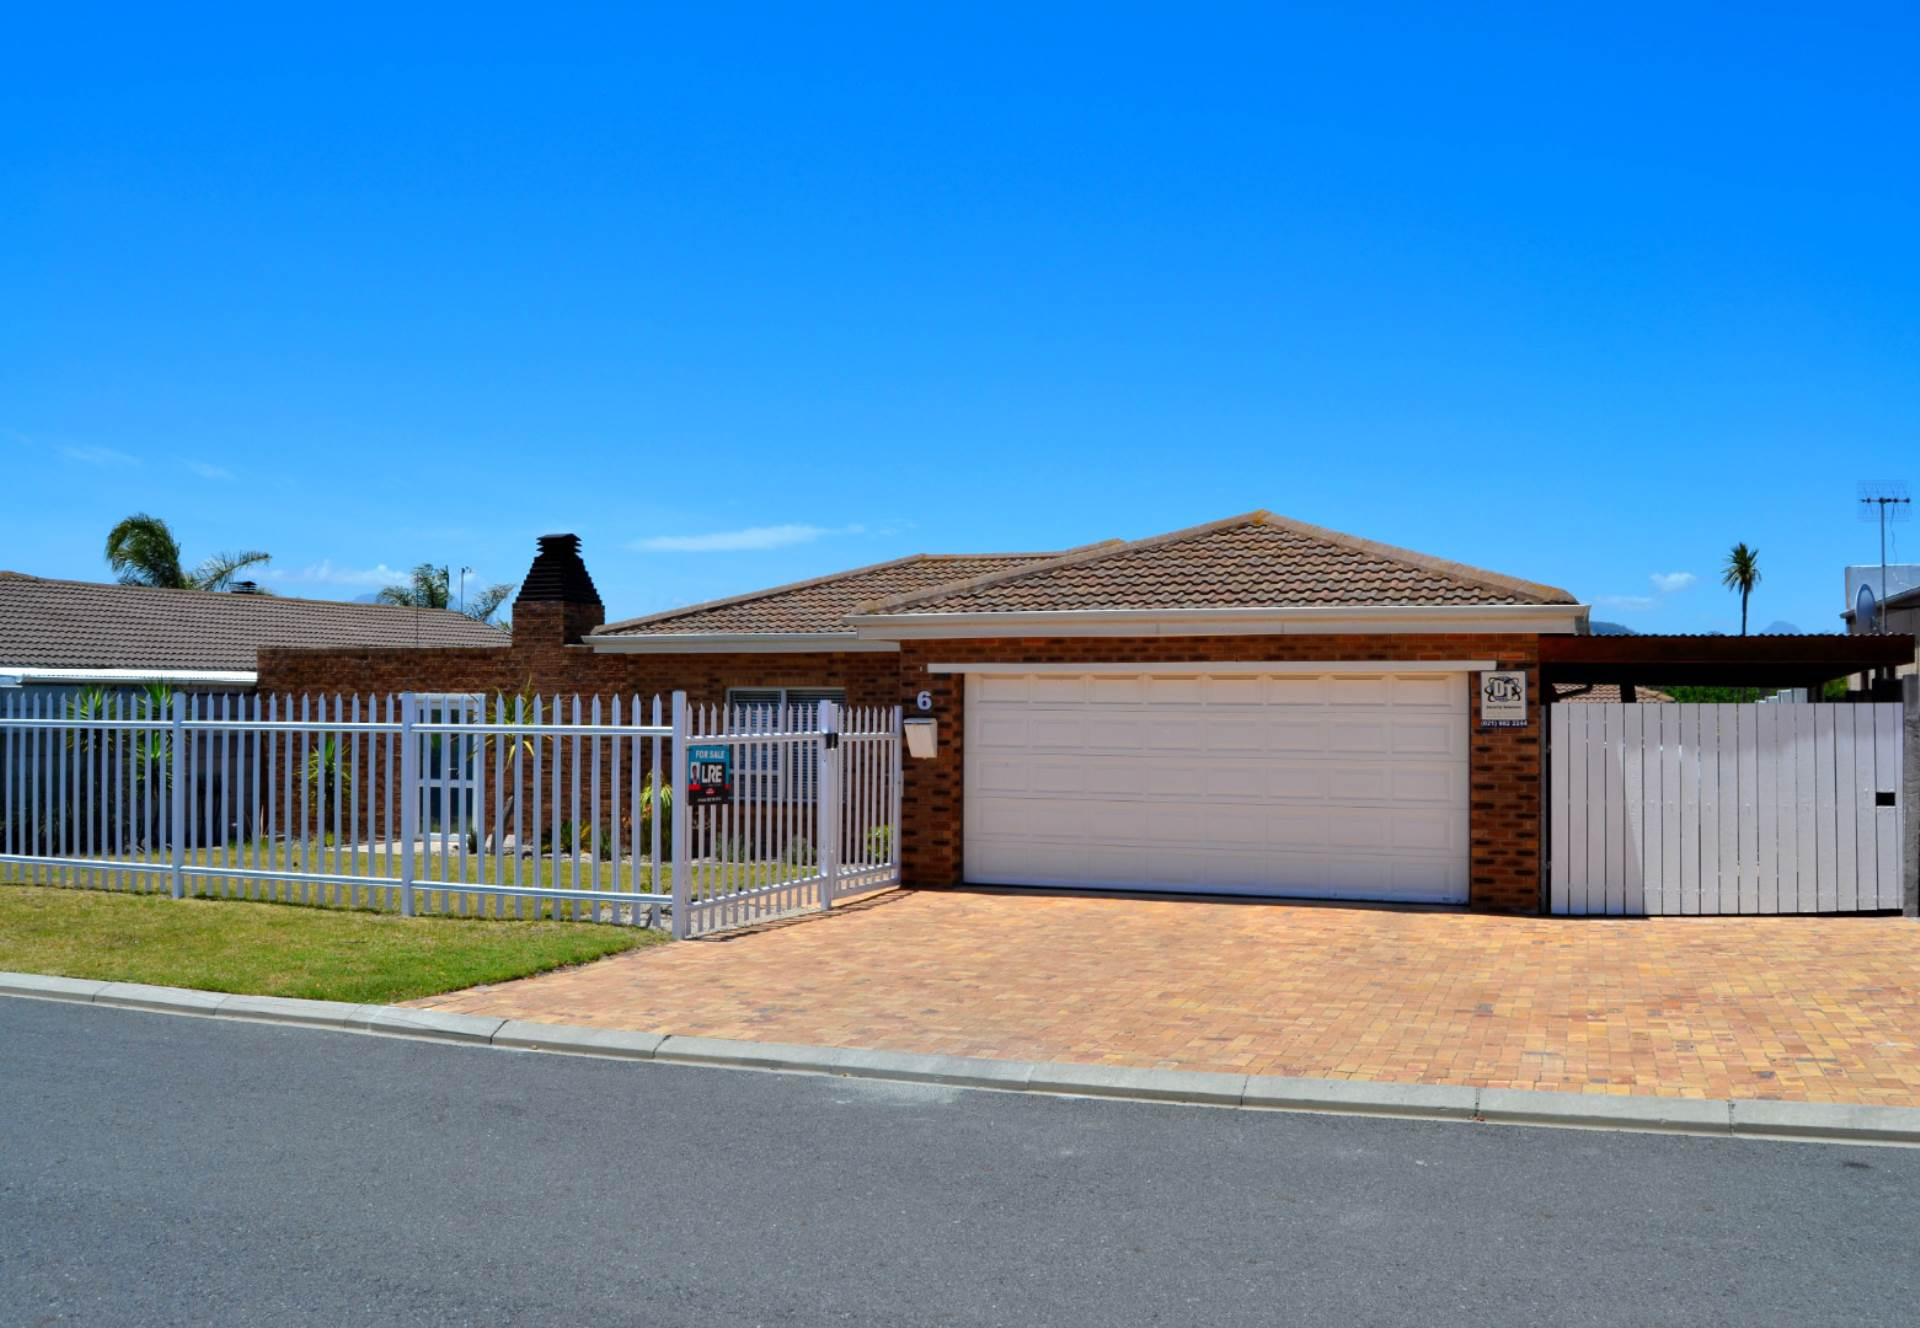 3 BedroomHouse For Sale In Protea Heights